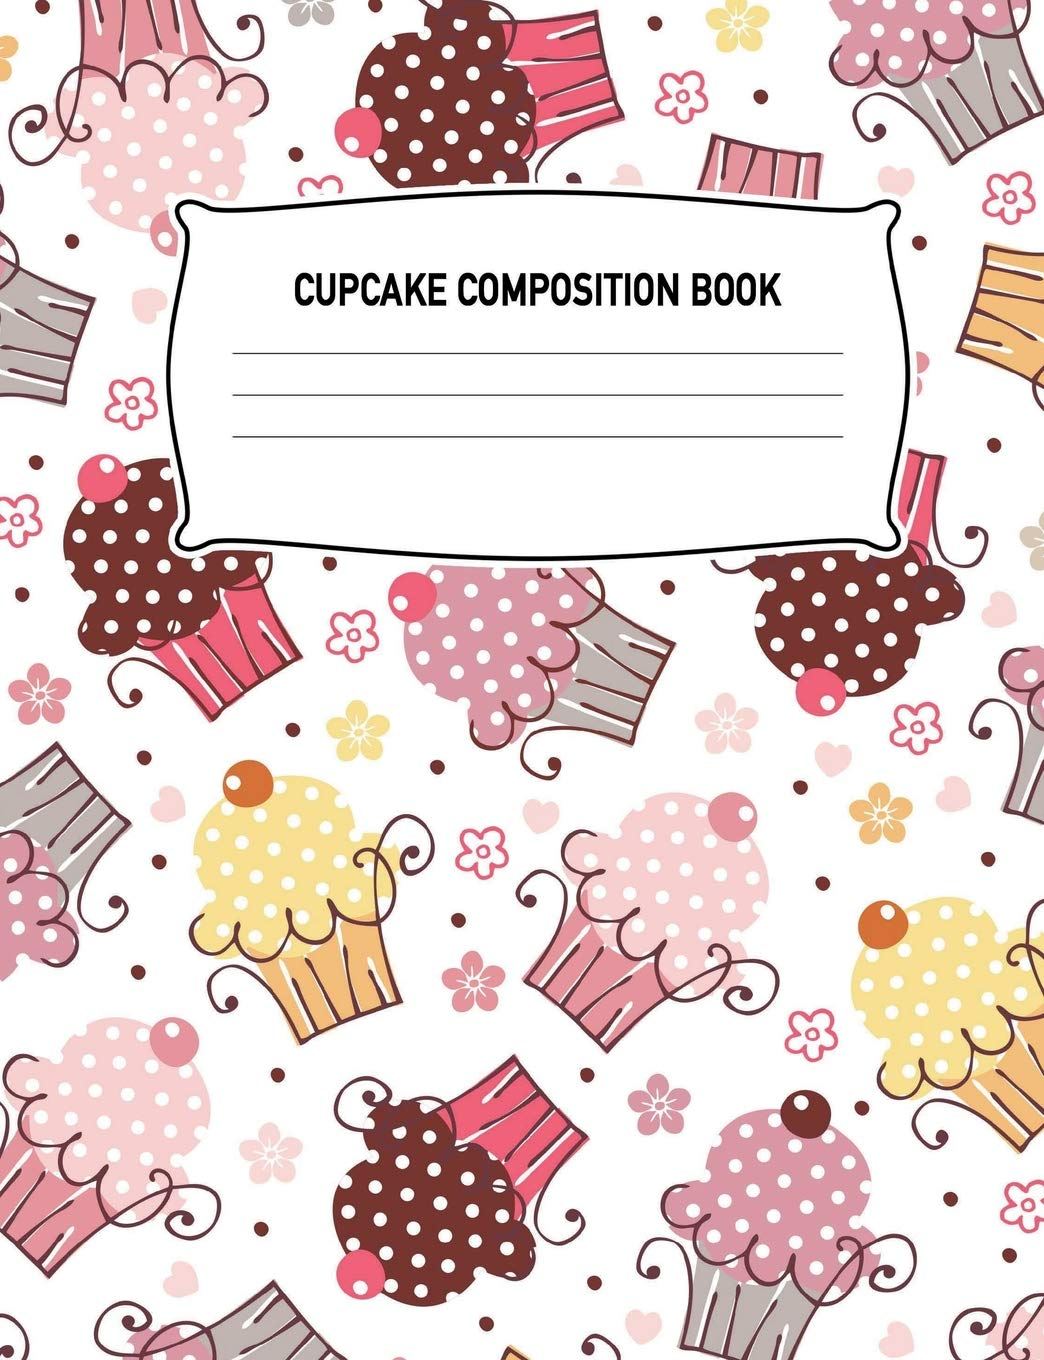 Download Cupcake Composition Book: Dessert Muffin Baking Notebook Wide Ruled Writing Diary Practice Journal Organizer: Youth, Kids, Preschool, Kindergarten, ... Notepad Lined Paper, 100 Pages, 50 Sheets ebook